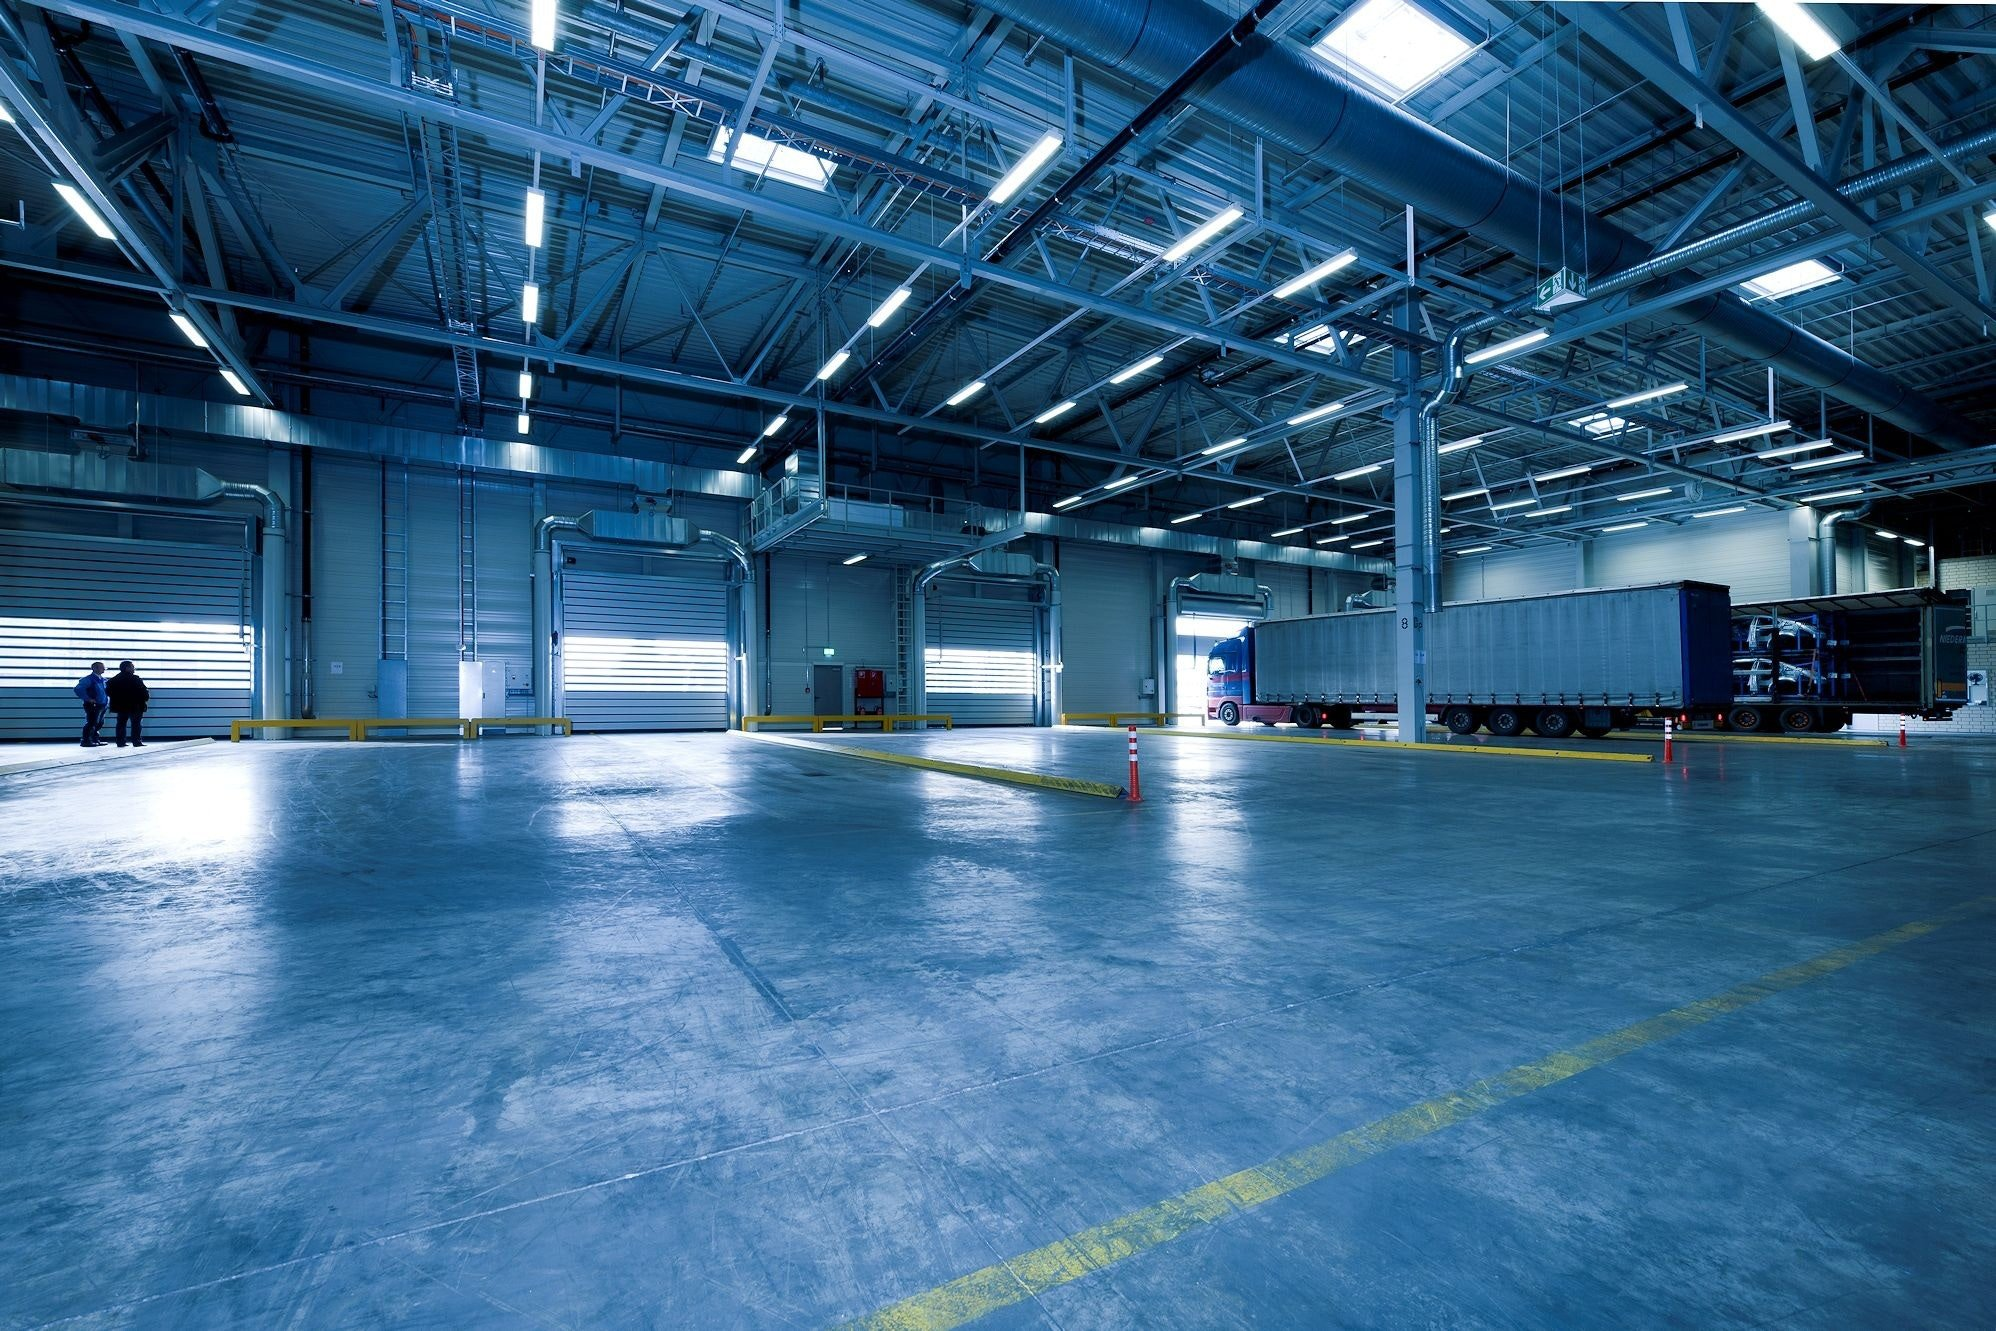 How to set up an excellent data dashboard? (4 practices for warehousing companies)